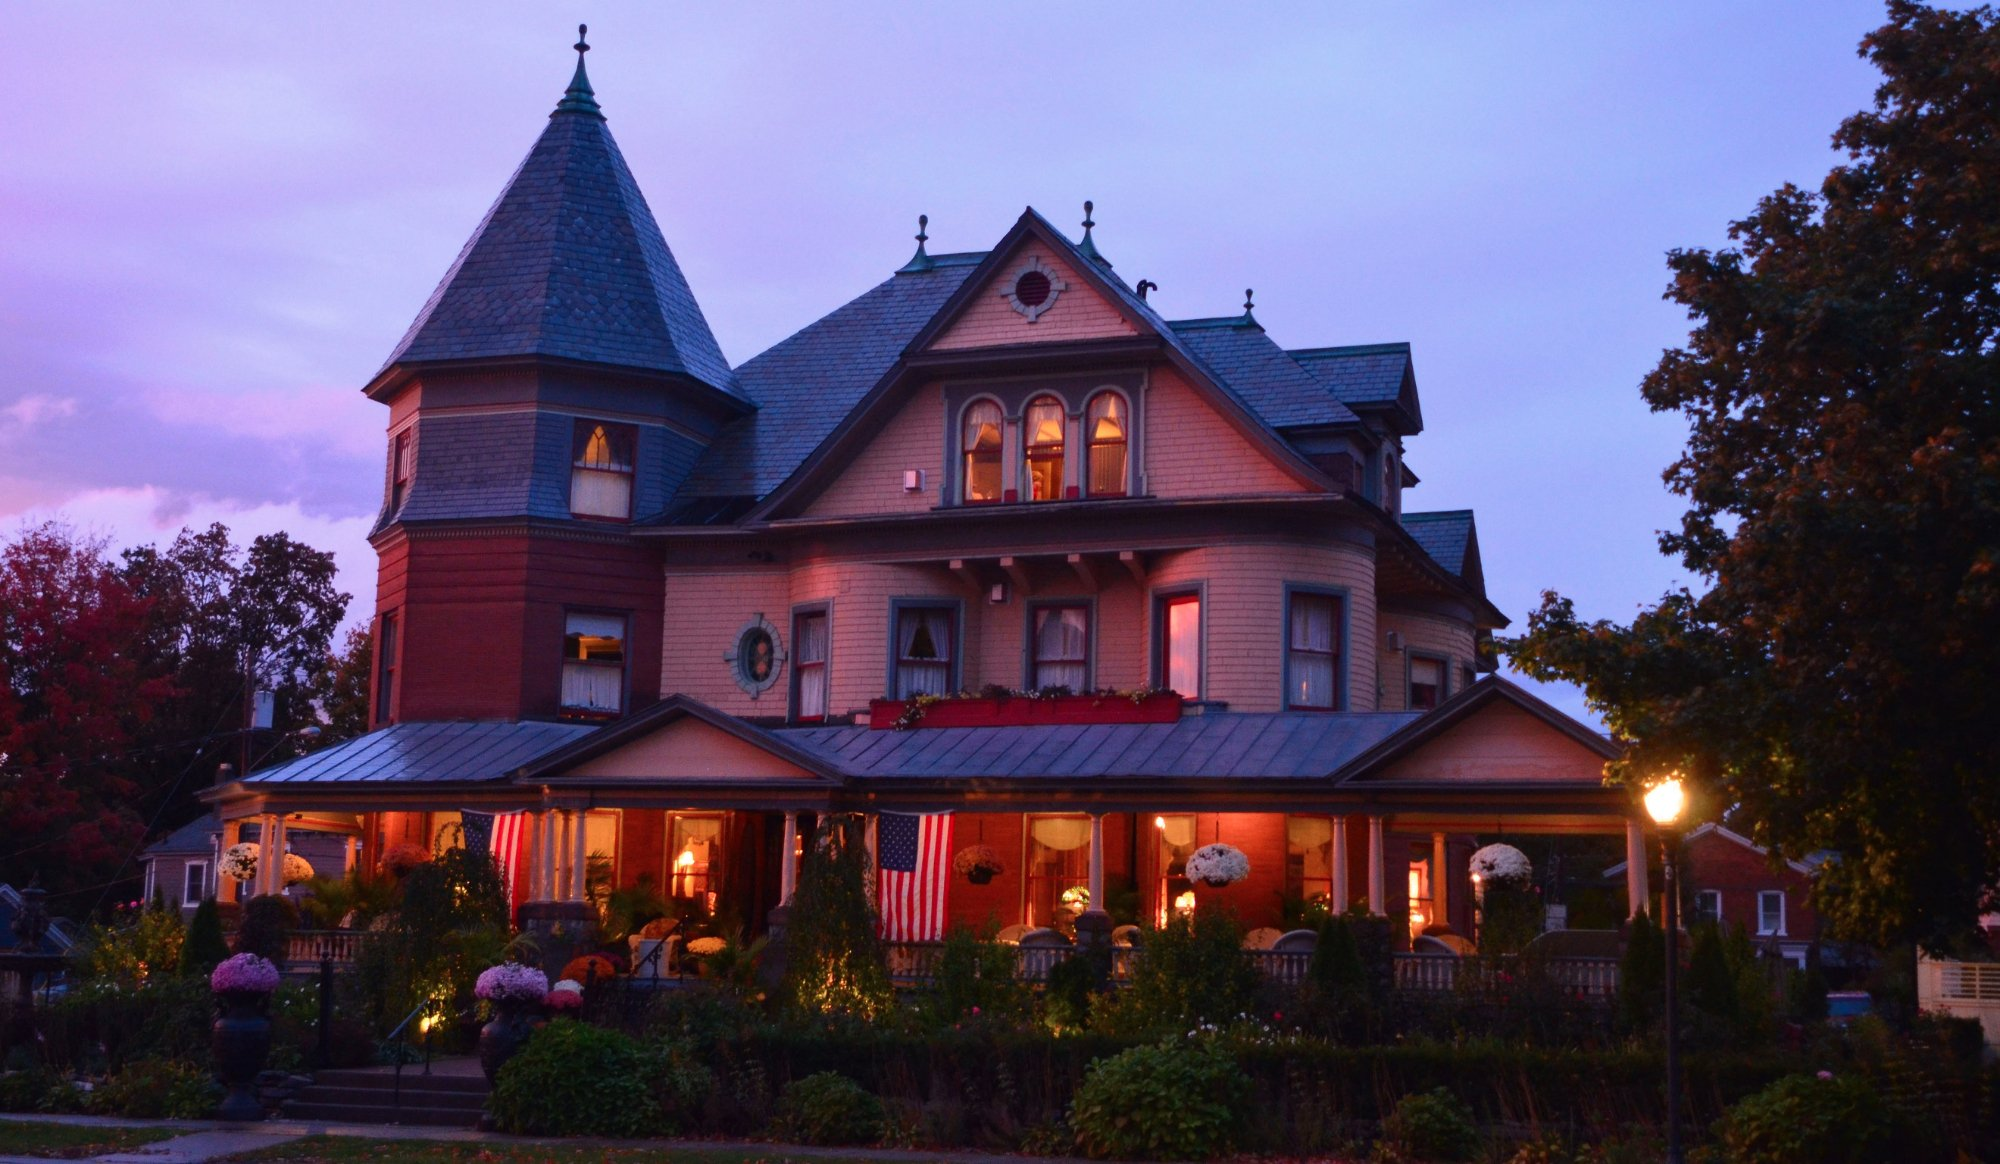 Union Gables Mansion Inn